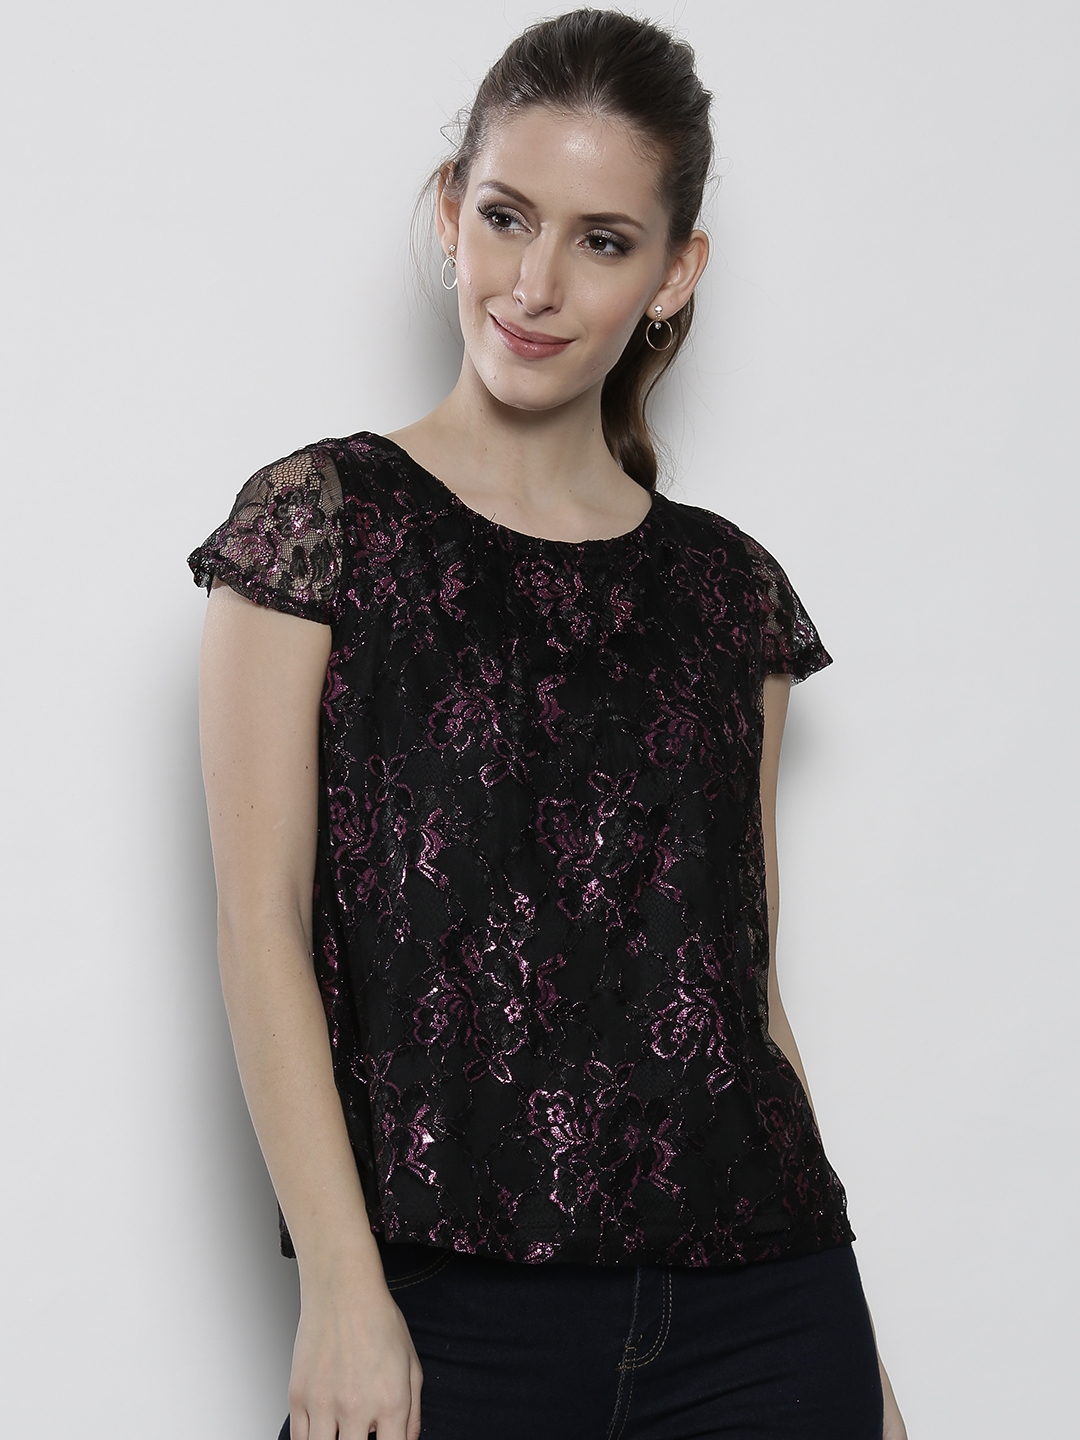 e74a5e9ce0a968 Buy DOROTHY PERKINS Women Black Lace A Line Top - Tops for Women ...